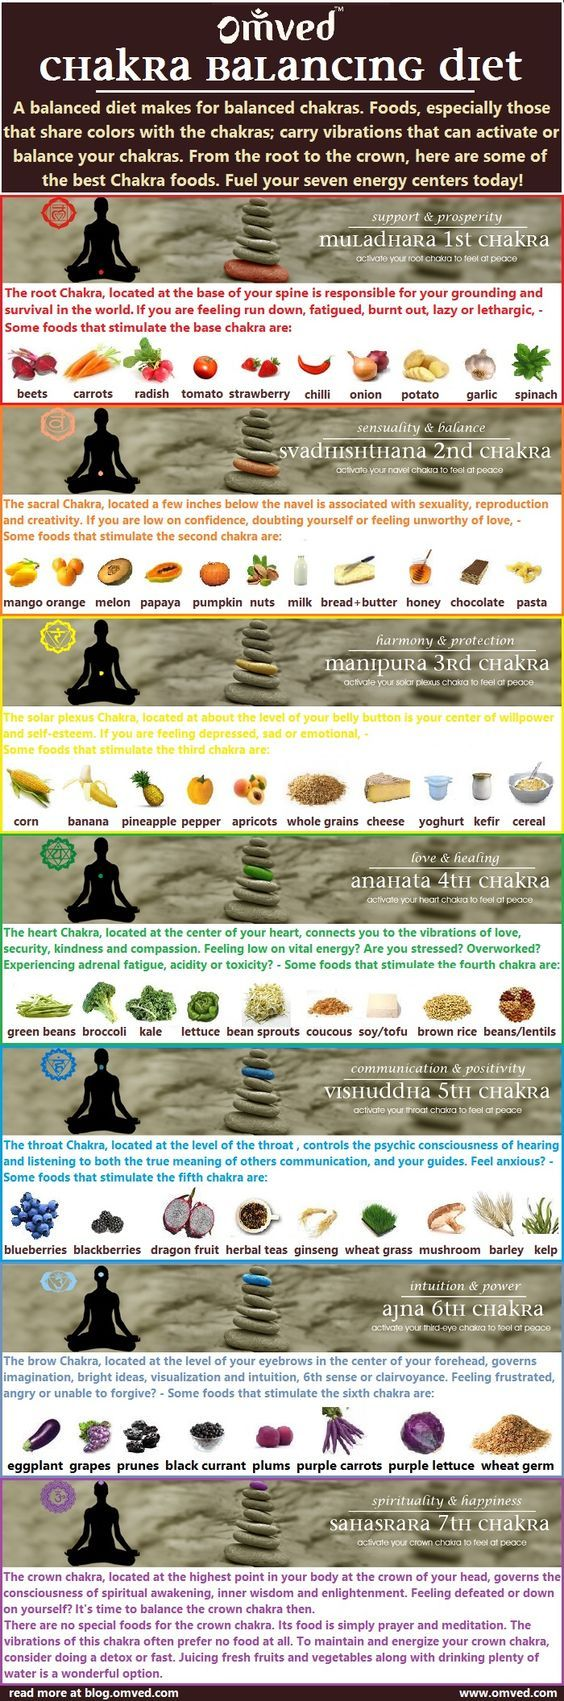 Chakras are spinning energy centers located throughout your body that influence and reflect your physical health as well as your mental, emotional and spiritual wellbeing. Balanced diet can result in balanced chakras. Here is a chart of the best #chakra #foods.